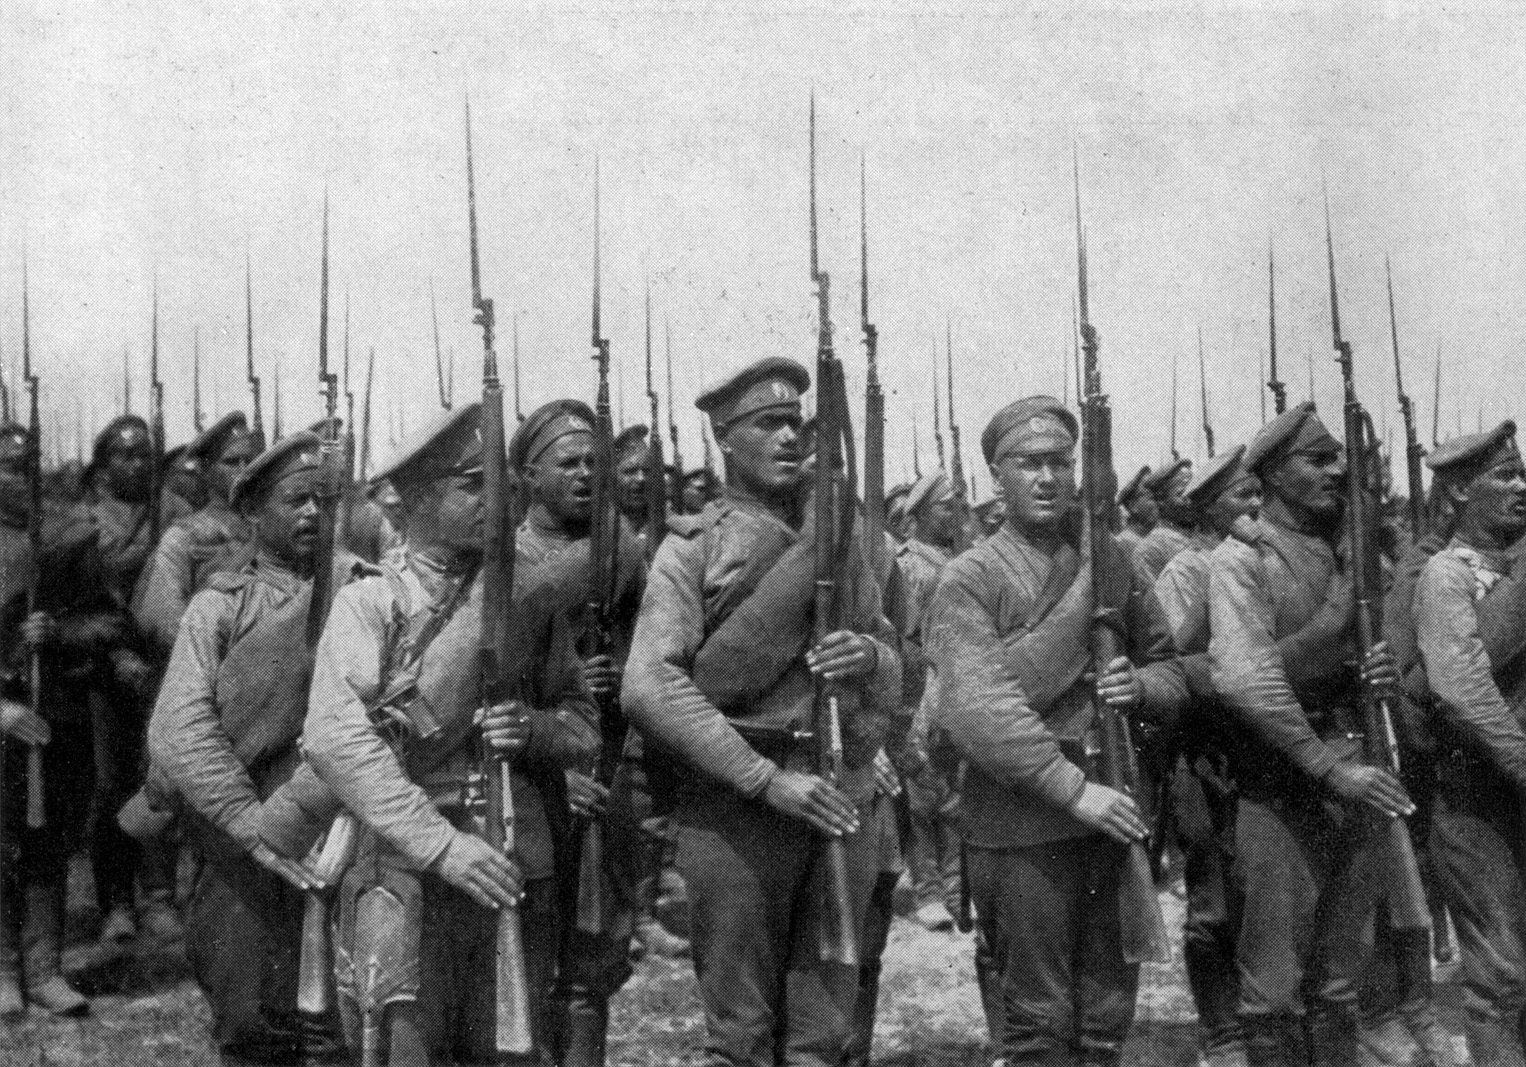 Brusilov's infantry, Russian Front, summer 1915